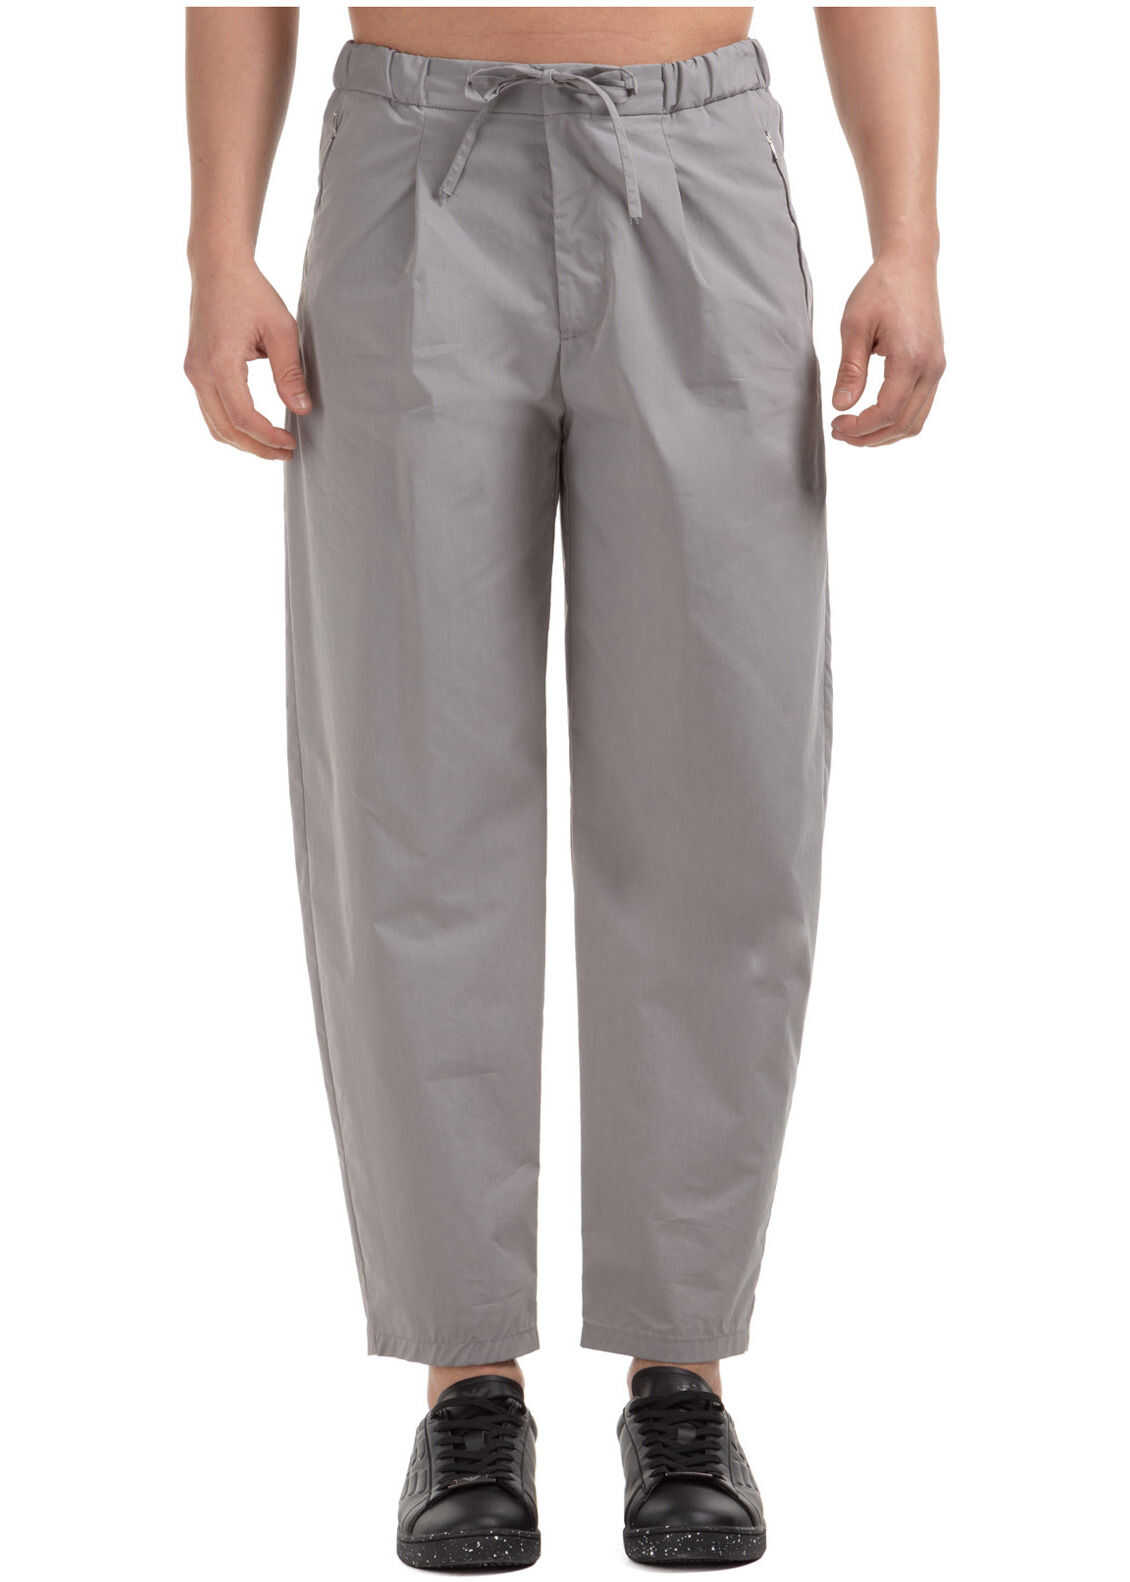 Emporio Armani Trousers Pants Grey